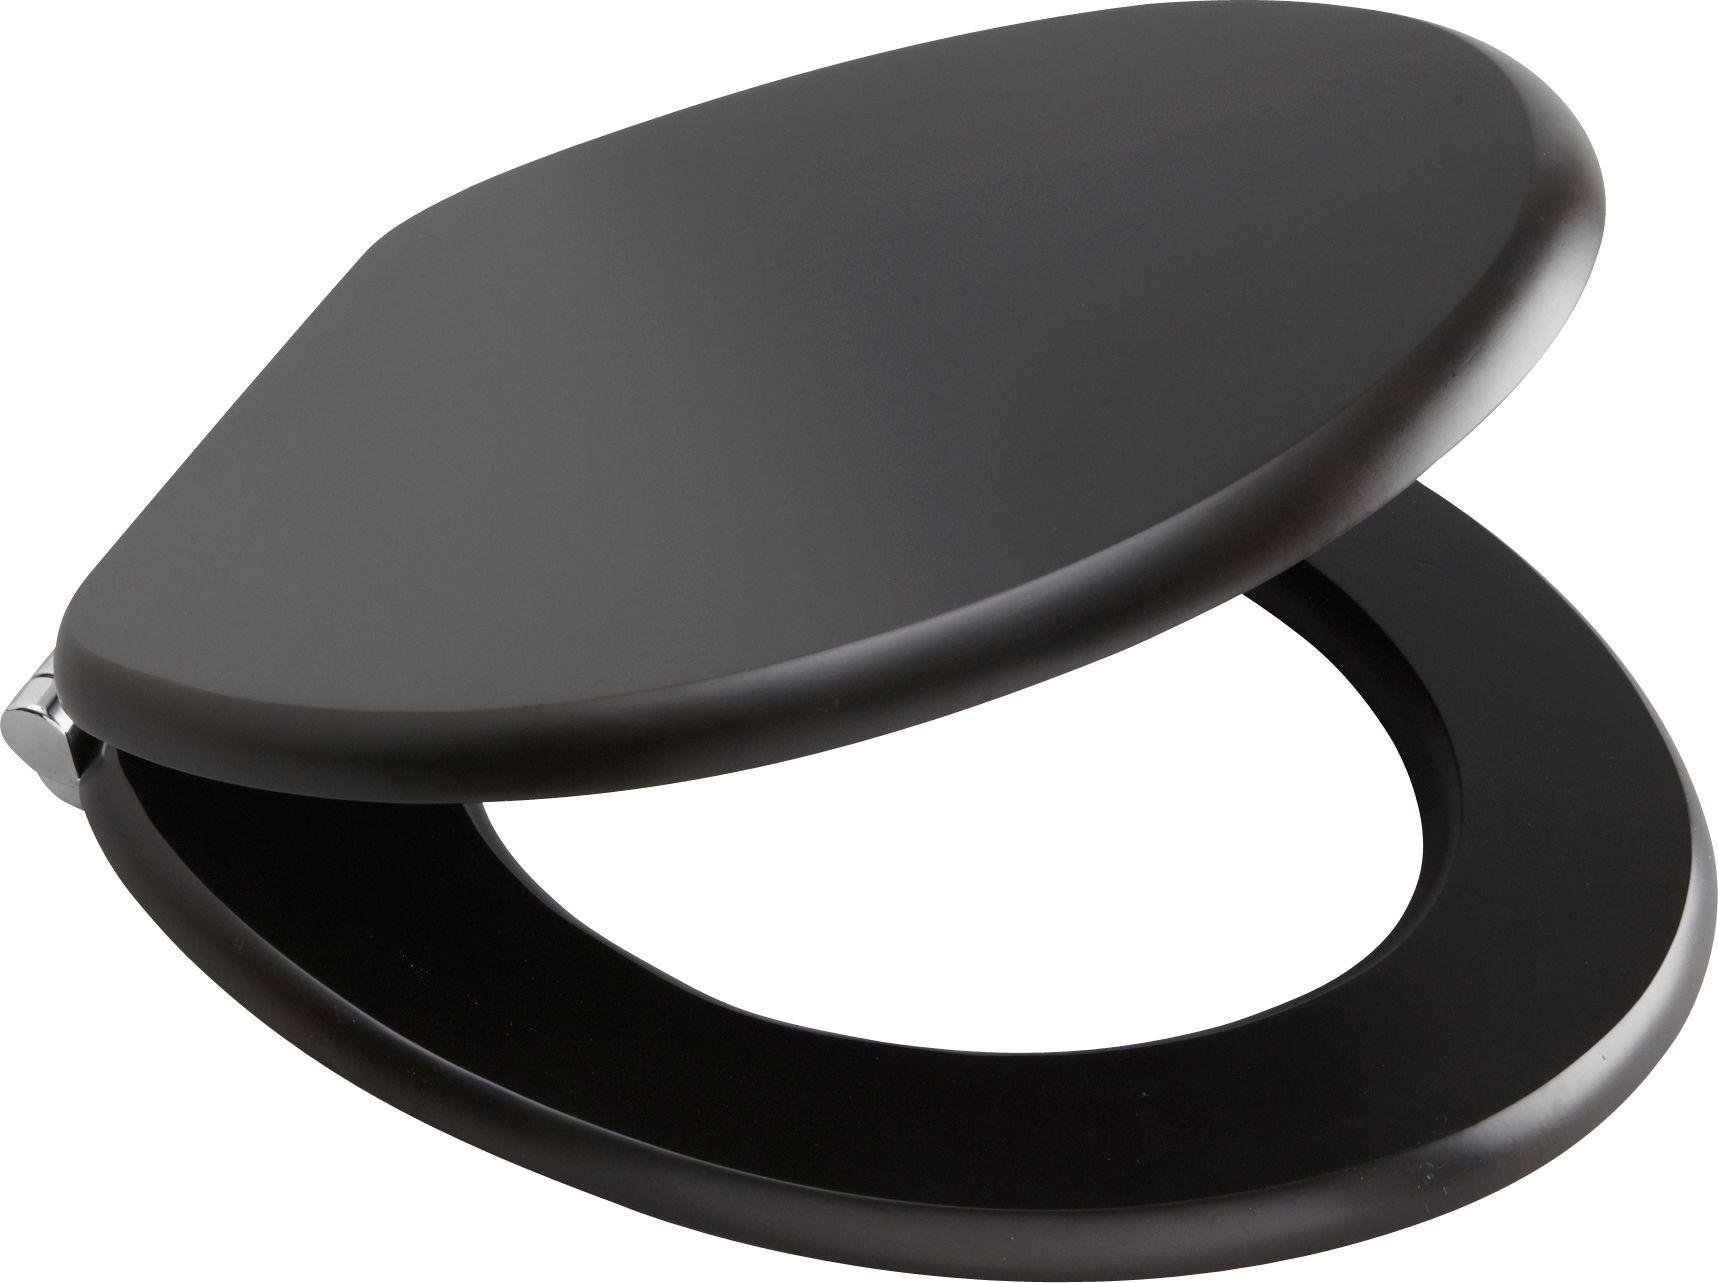 Buy Argos Home Solid Wood Slow Close Toilet Seat Black Toilet